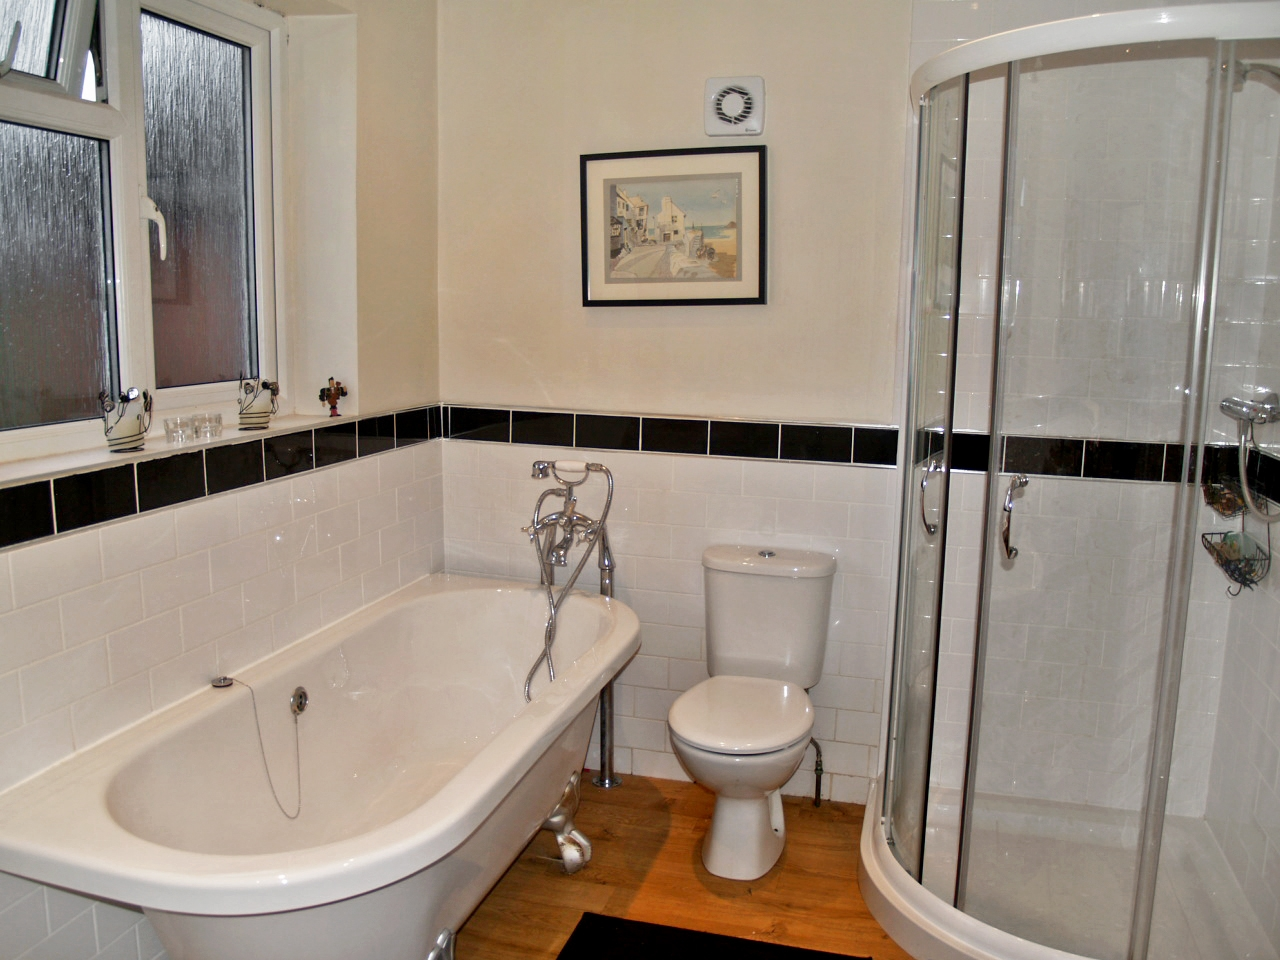 5 bedroom semi detached house SSTC in Solihull - photograph 9.